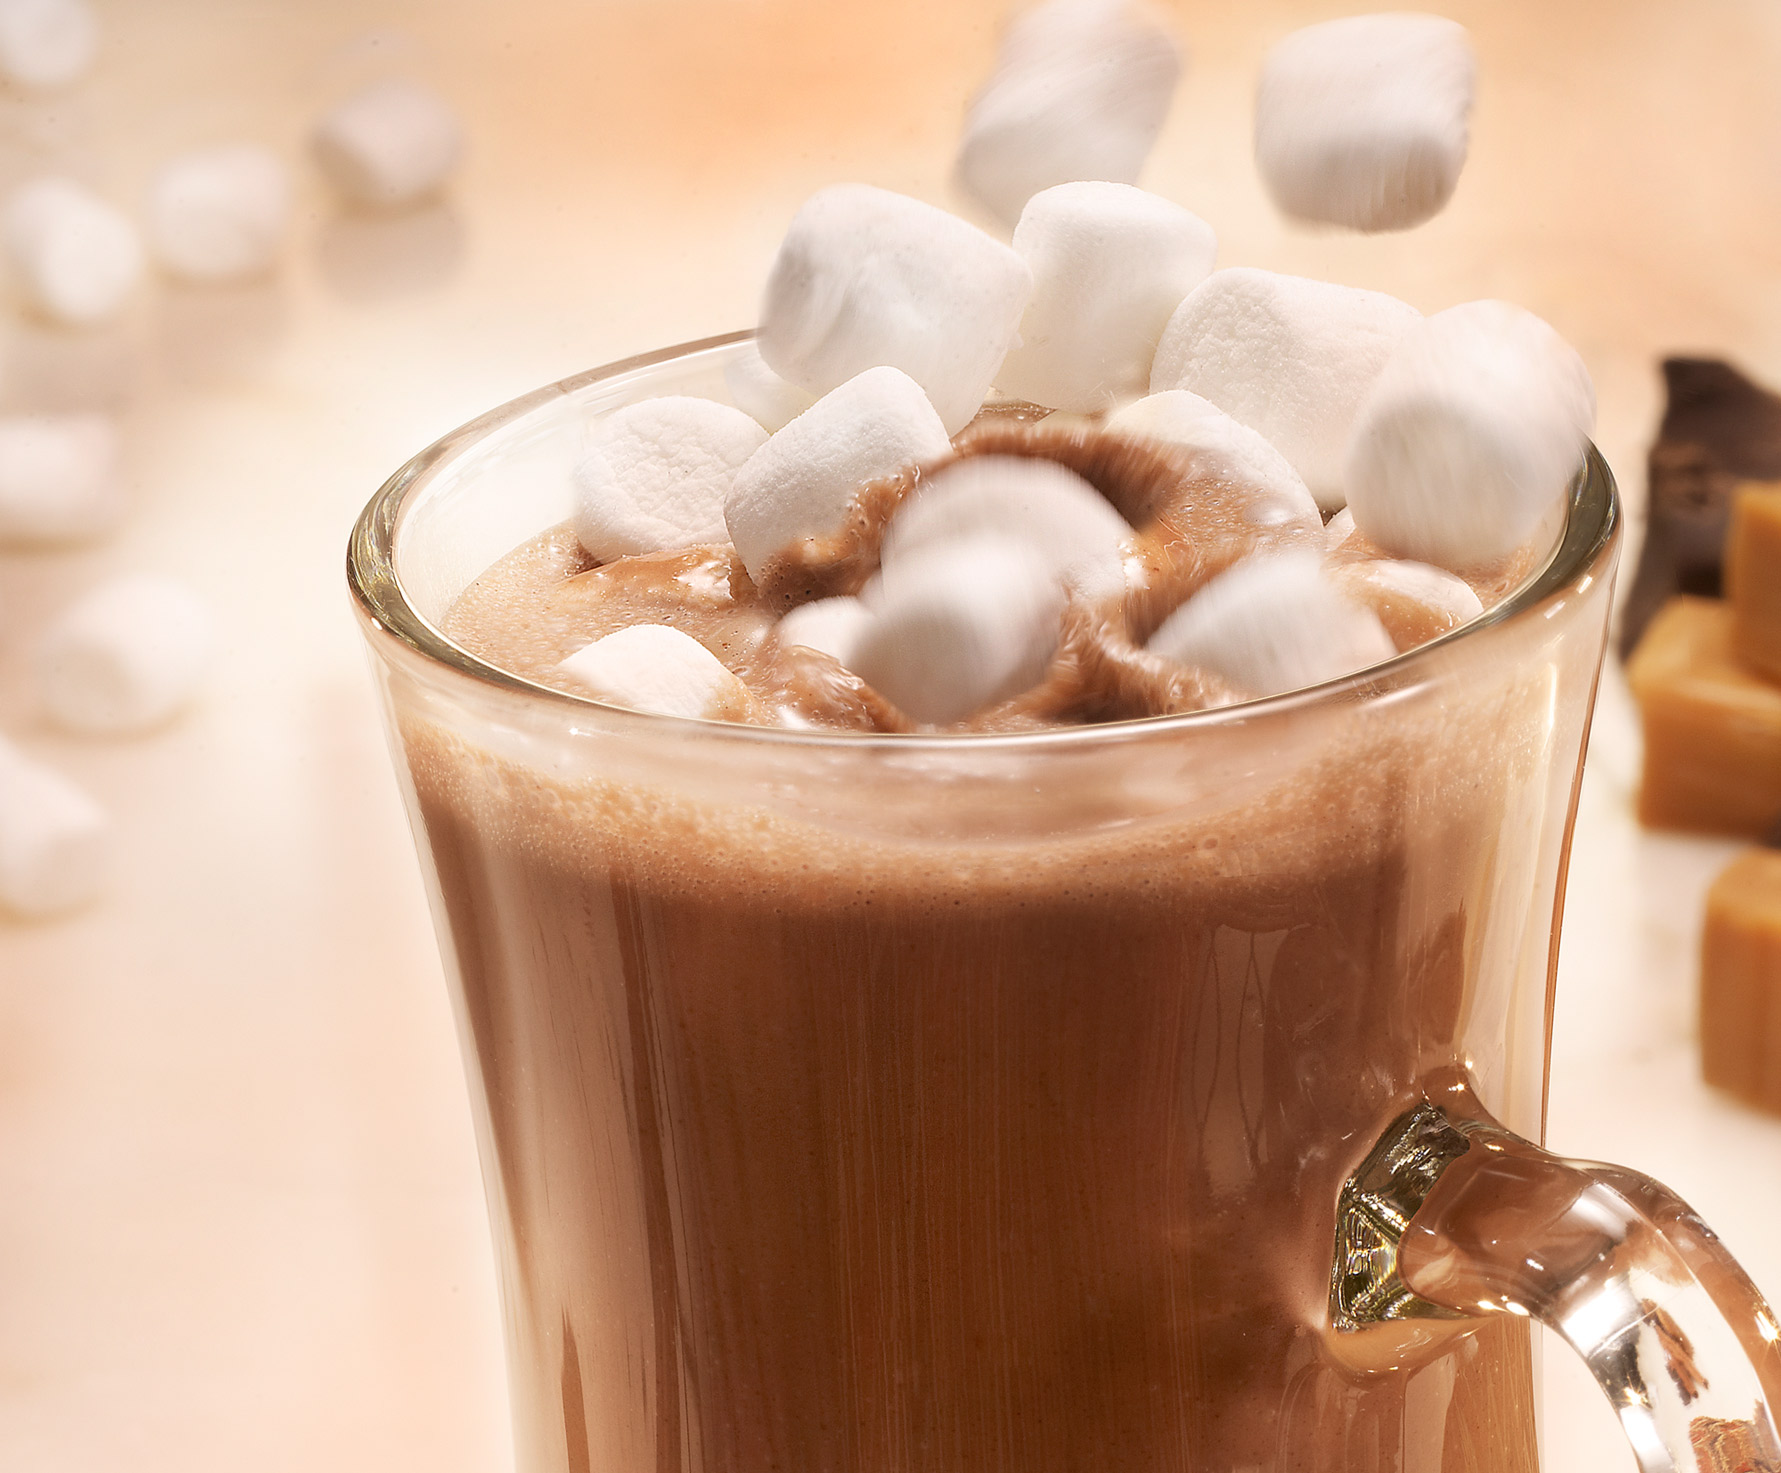 Glasshouse Assignment - David Bishop - Beverage Photography - Hot Chocholate with Marshmellos drop